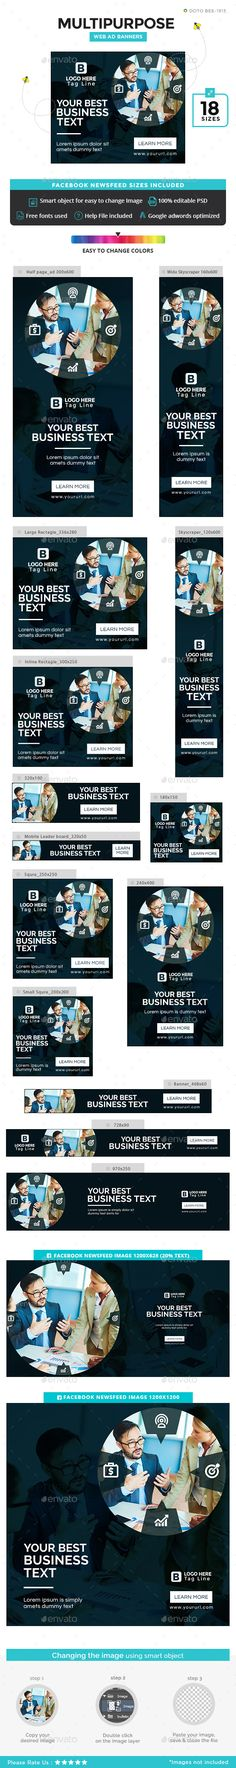 Buy Fitness Banners by Hyov on GraphicRiver. Promote your Products and services with this great looking Banner Set. Web Banner Design, Web Banners, Facebook Ad Size, Website Promotion, Free Website Templates, Google Ads, Banner Template, Business Design, Flat Web